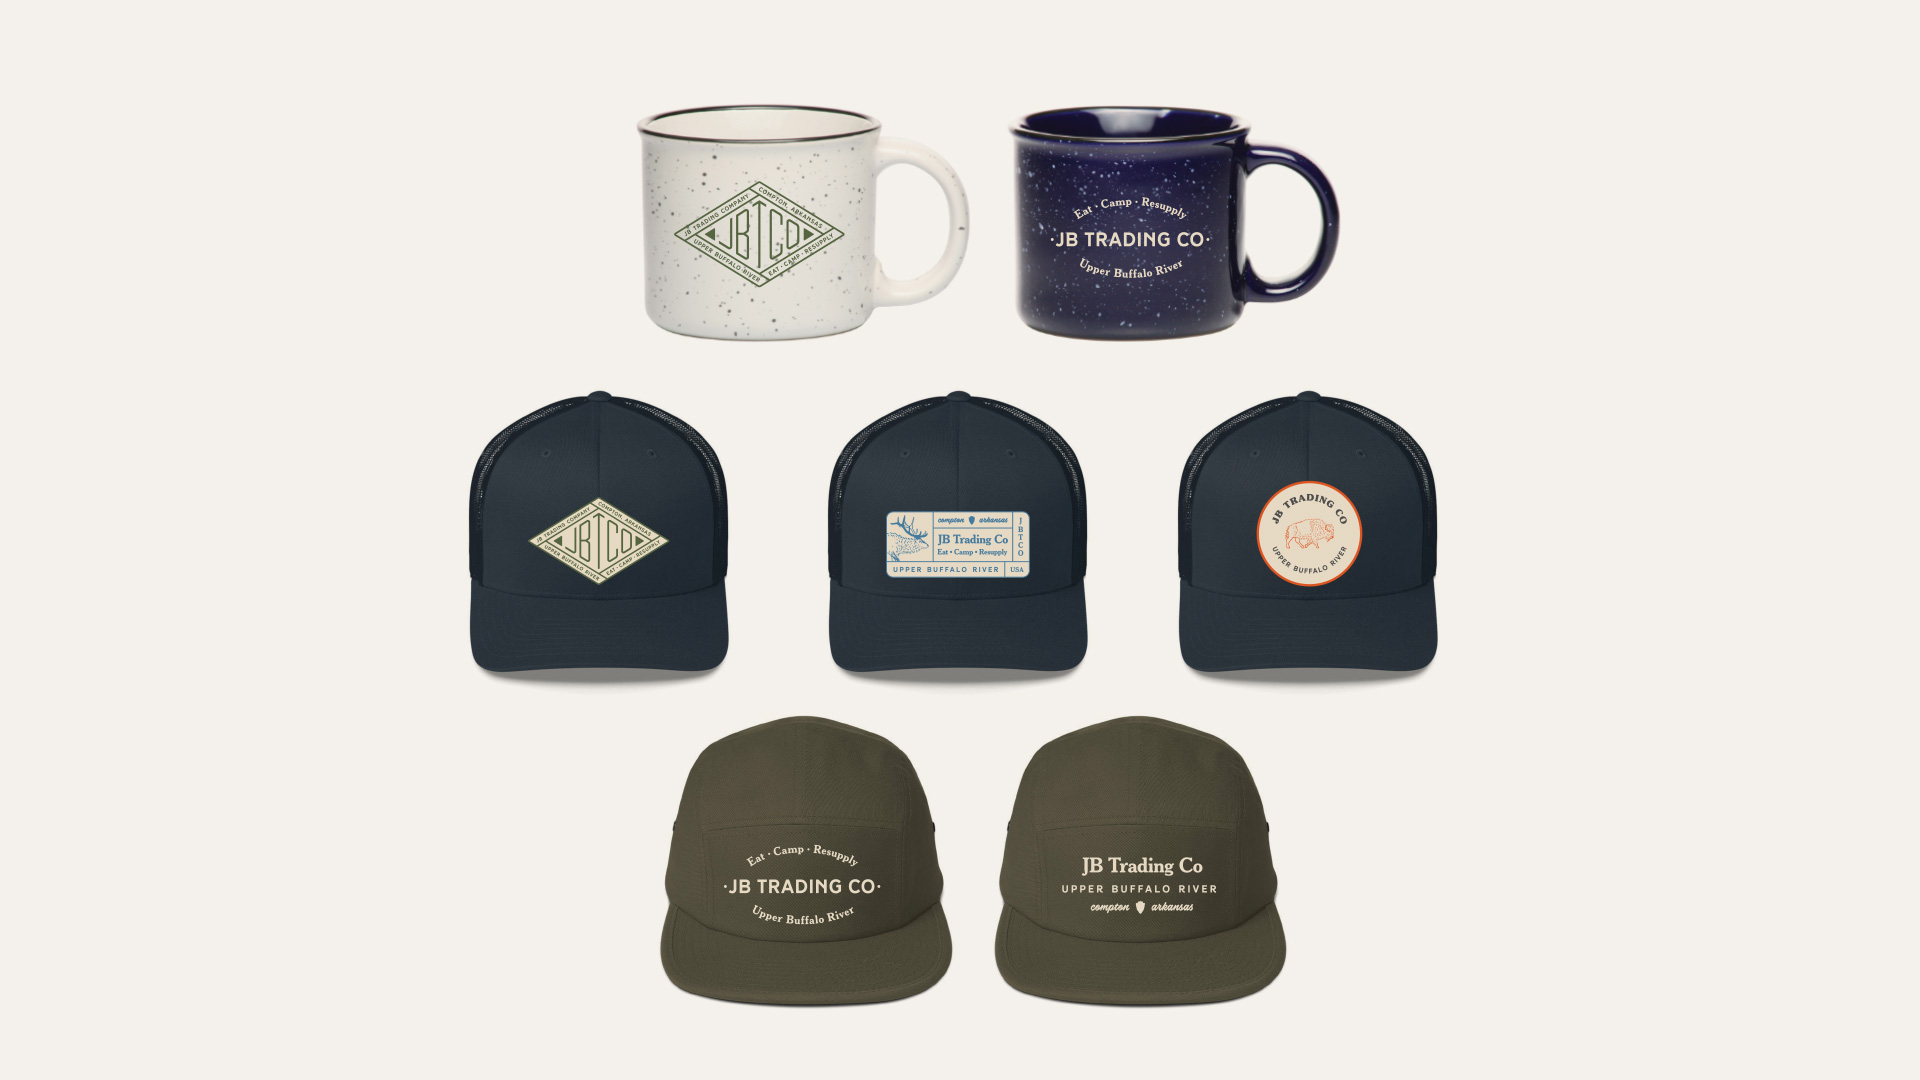 Hats & Mugs for JB Trading Co by Longitude Branding